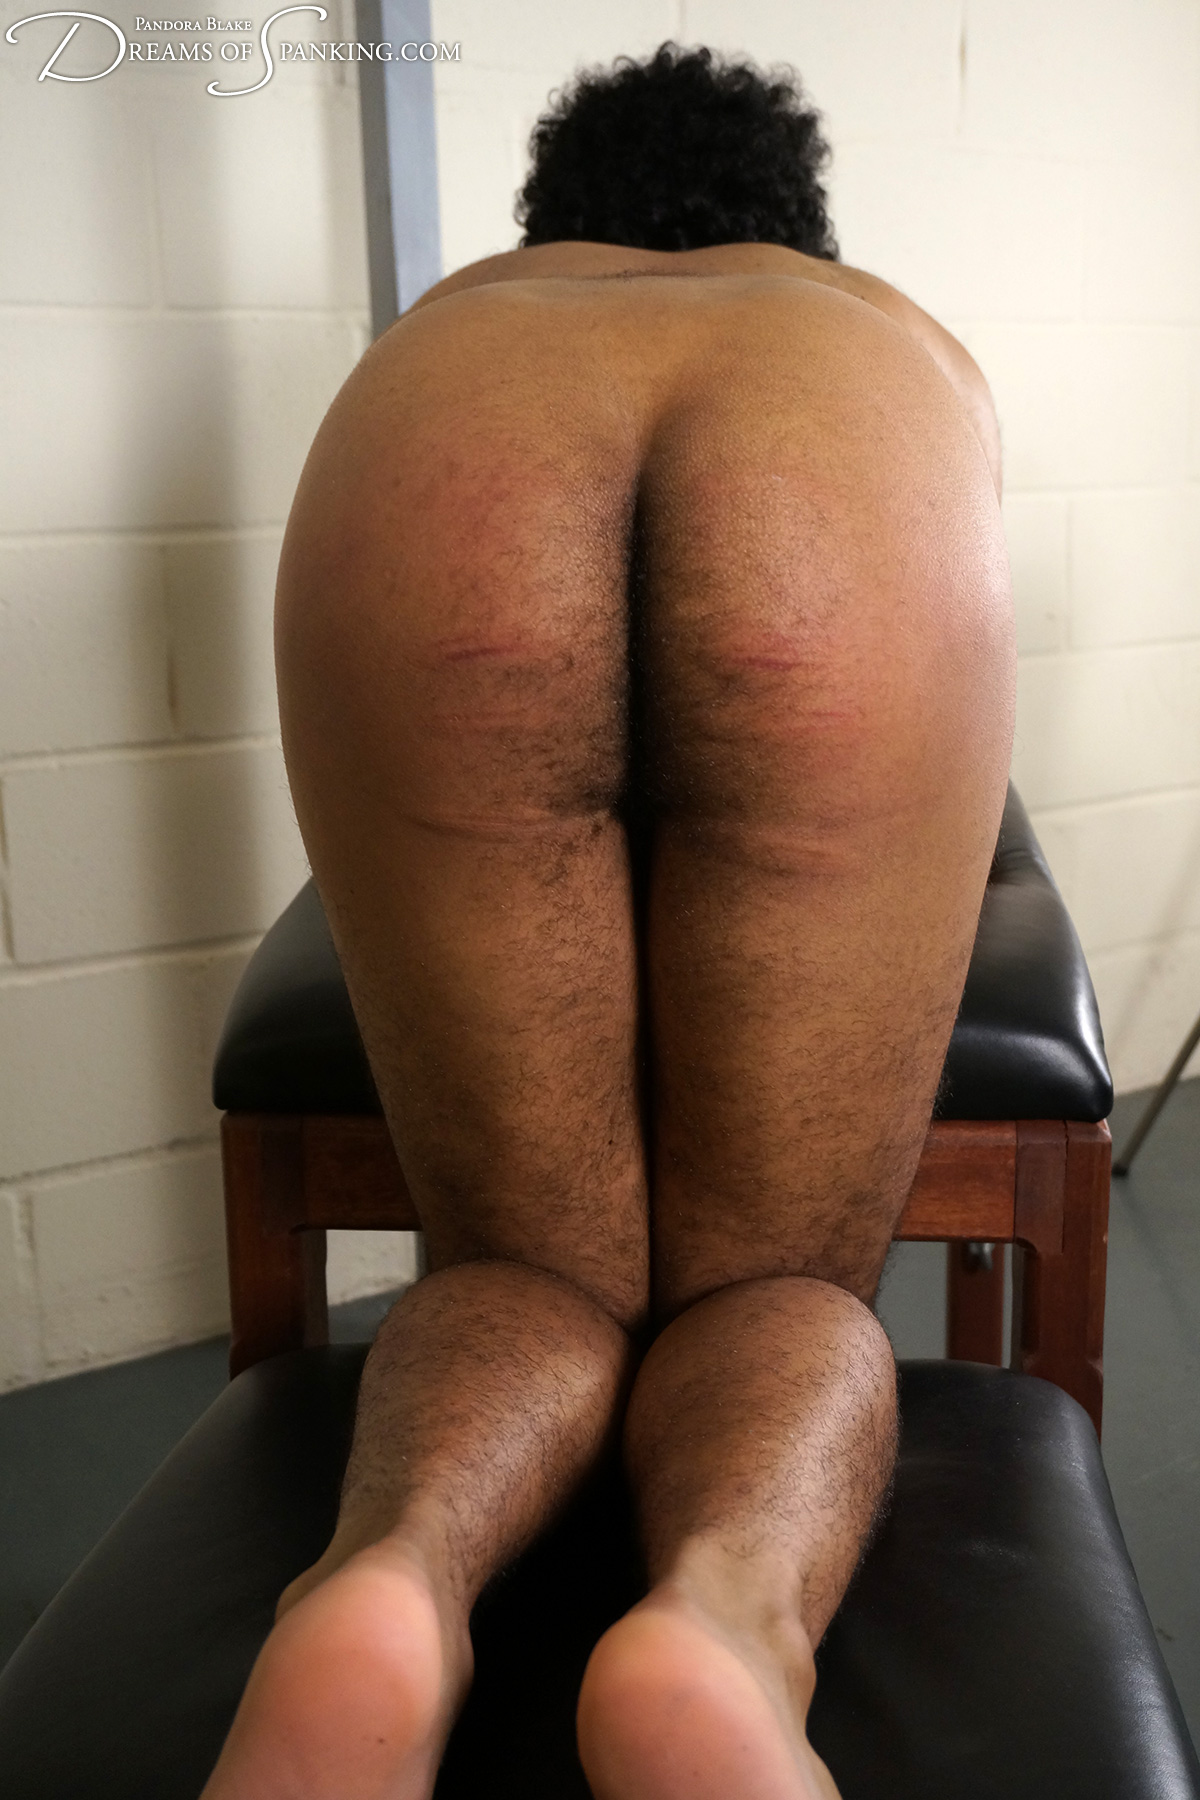 The clone's cold caning at Dreams of Spanking